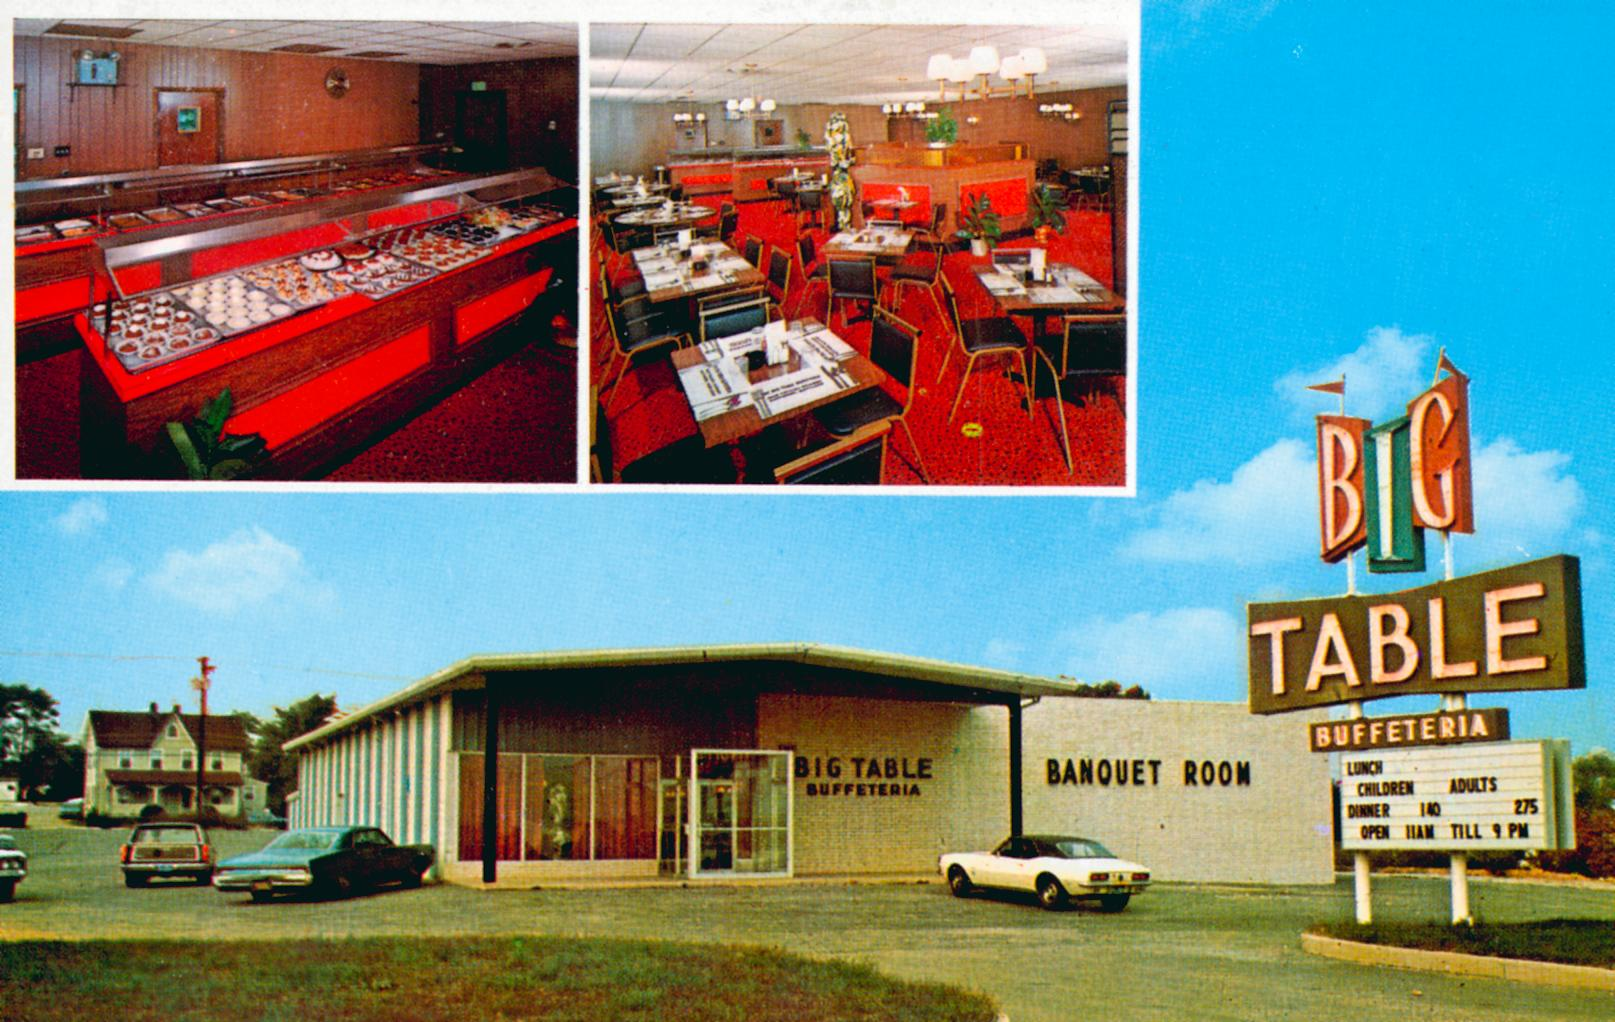 Big Table Buffeteria - 7600 Pulaski Highway, Baltimore, Maryland U.S.A. - 1960s